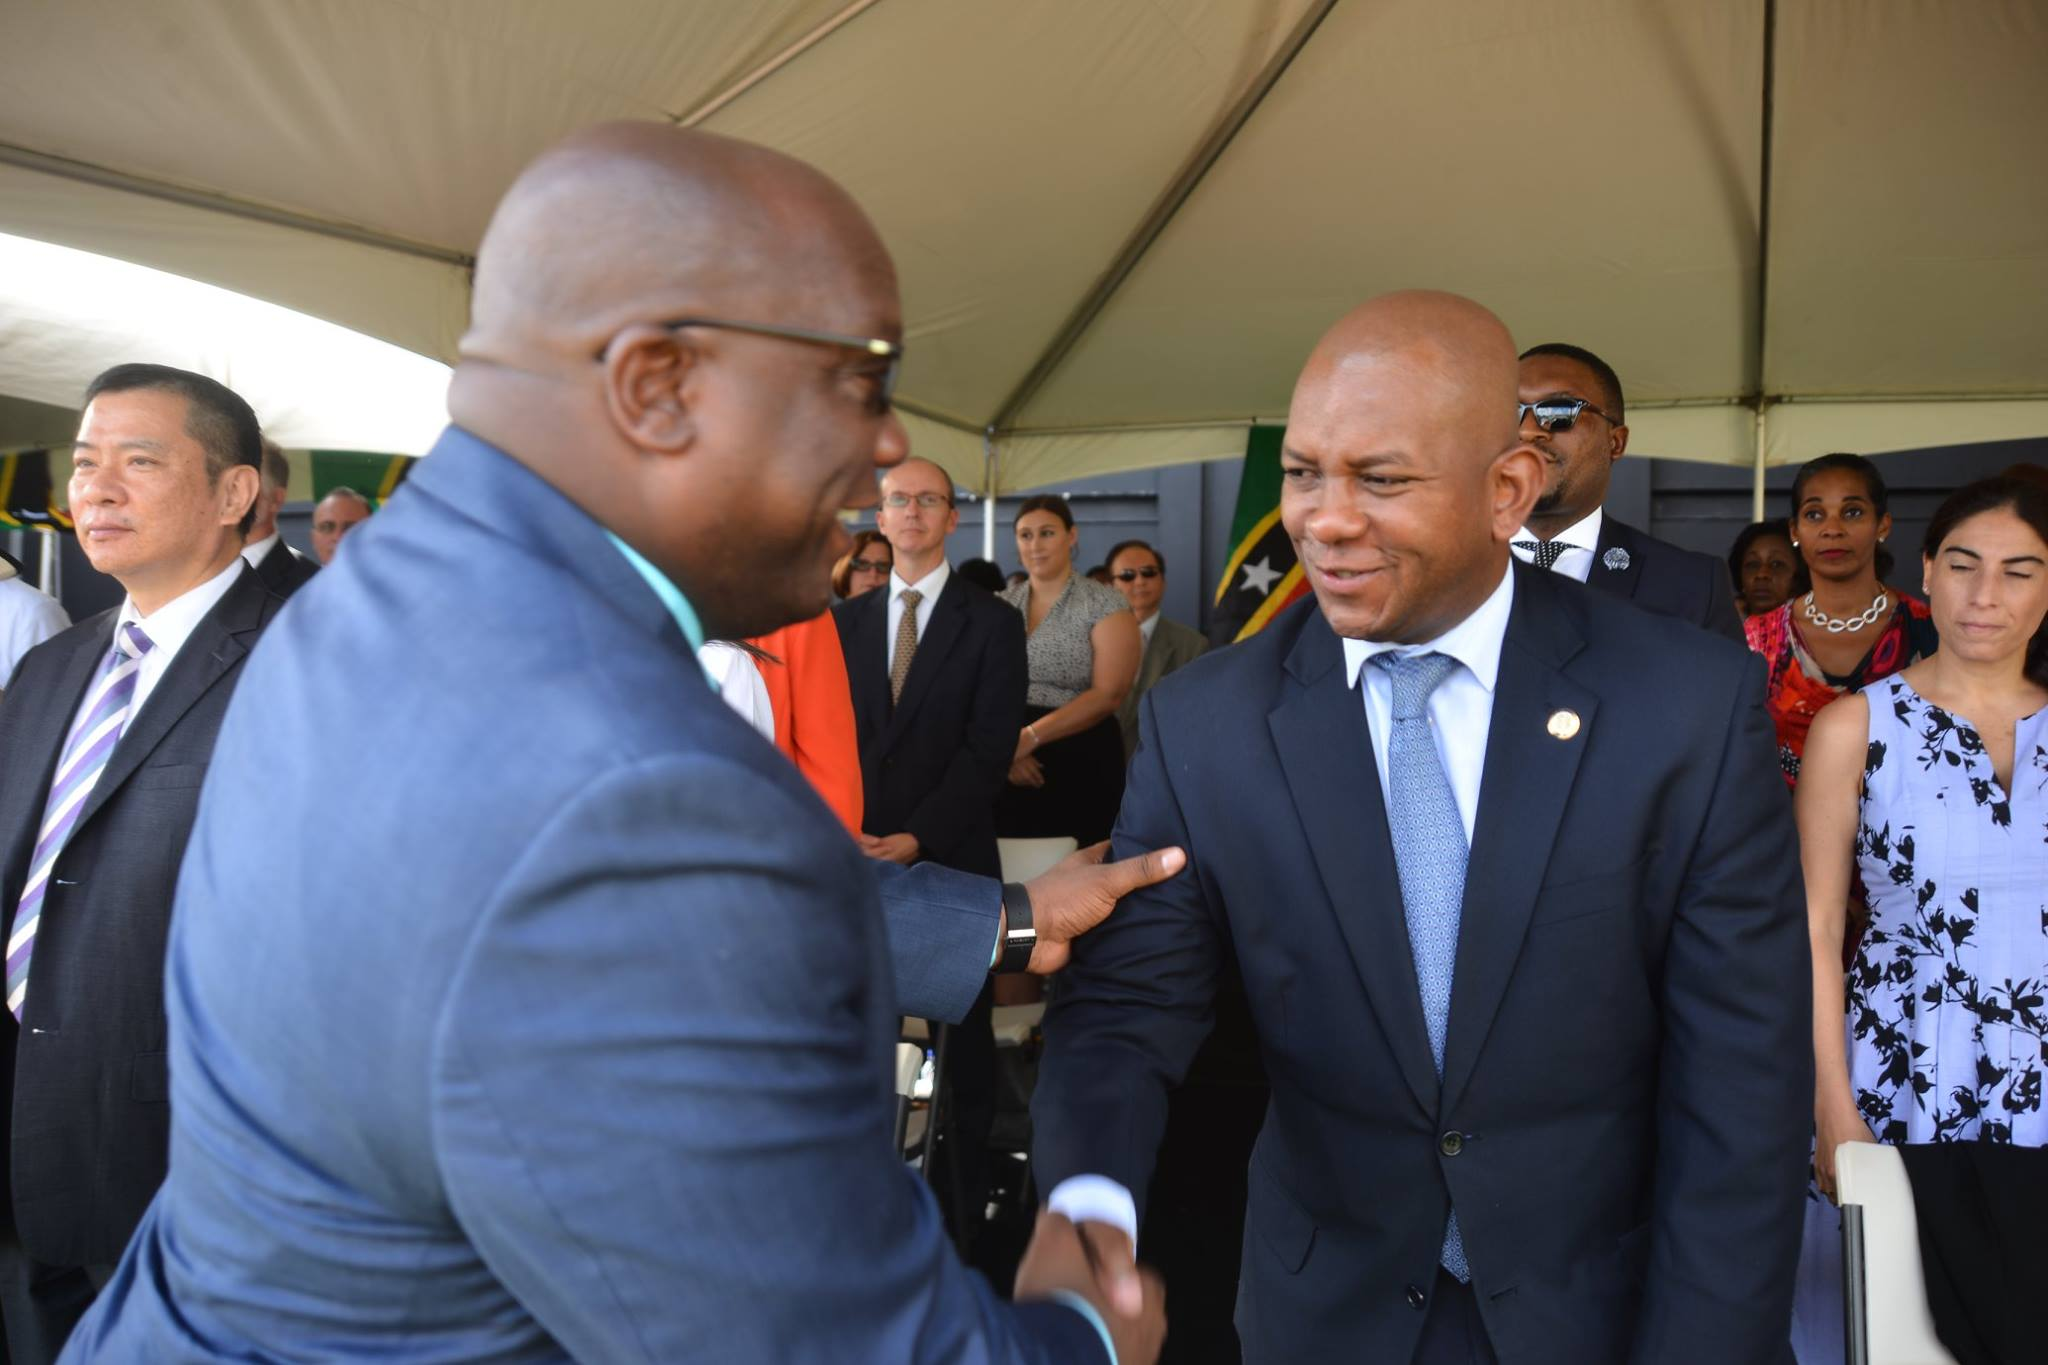 THE FEDERATION OF ST KITTS AND NEVIS 33RD INDEPENDENCE DAY NATIONAL PARADE AT WARNER PARK - OAS Representative, Mr Terence Craig Greets the Prime Minister, The Honourable Dr Timothy Harris at the National Independence Day Parade